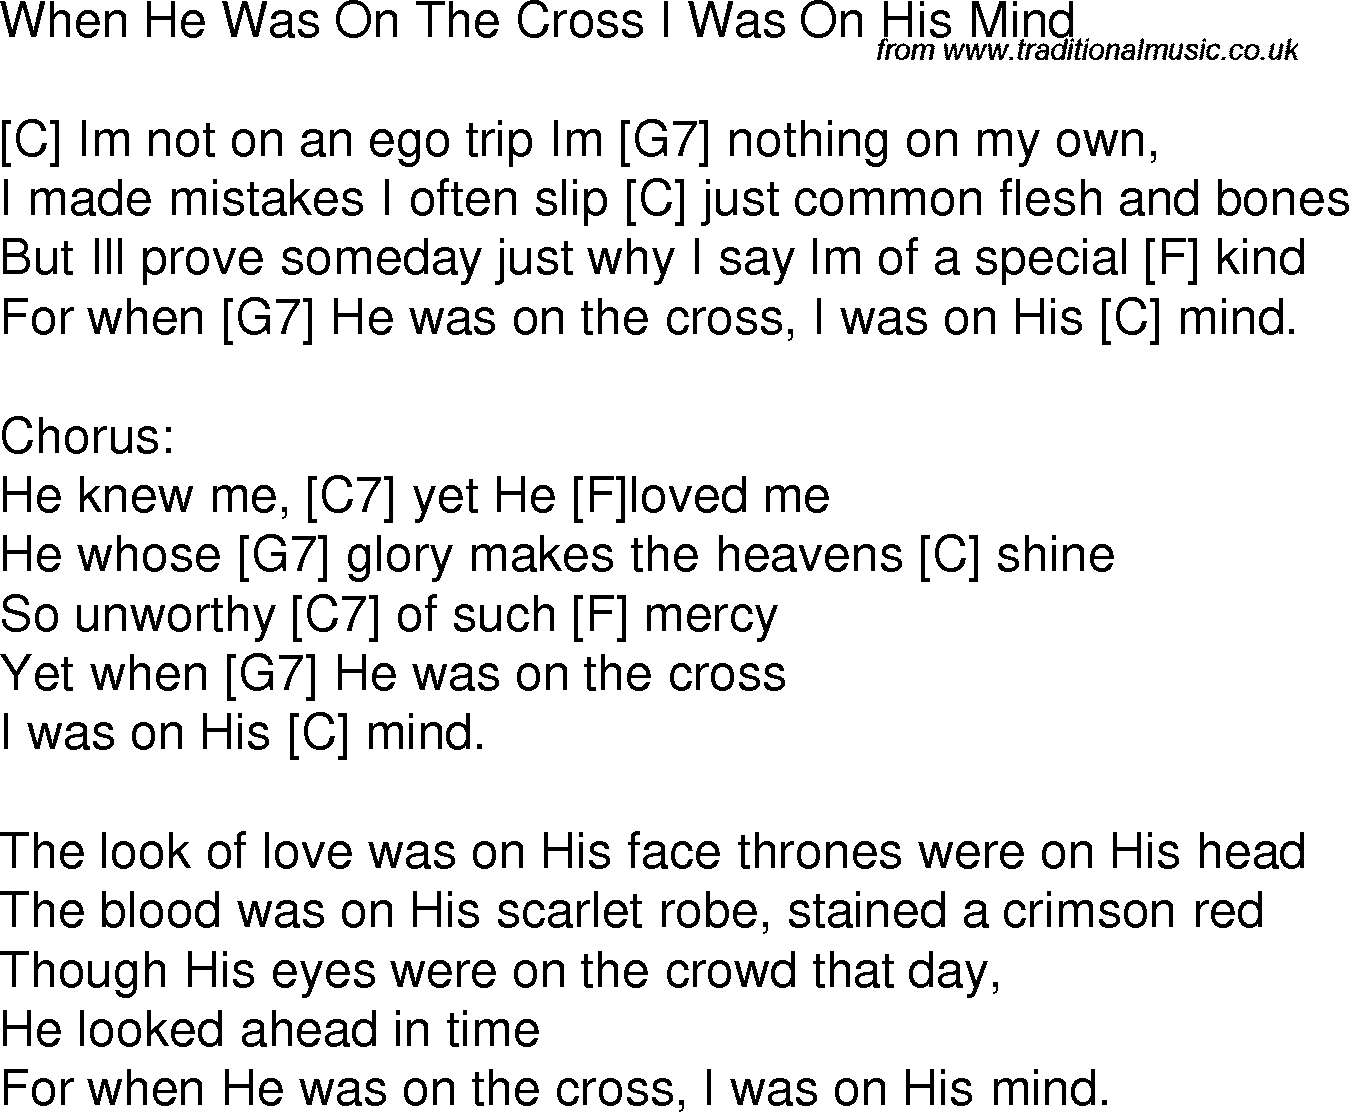 Old Time Song Lyrics With Chords For When He Was On The Cross I Was